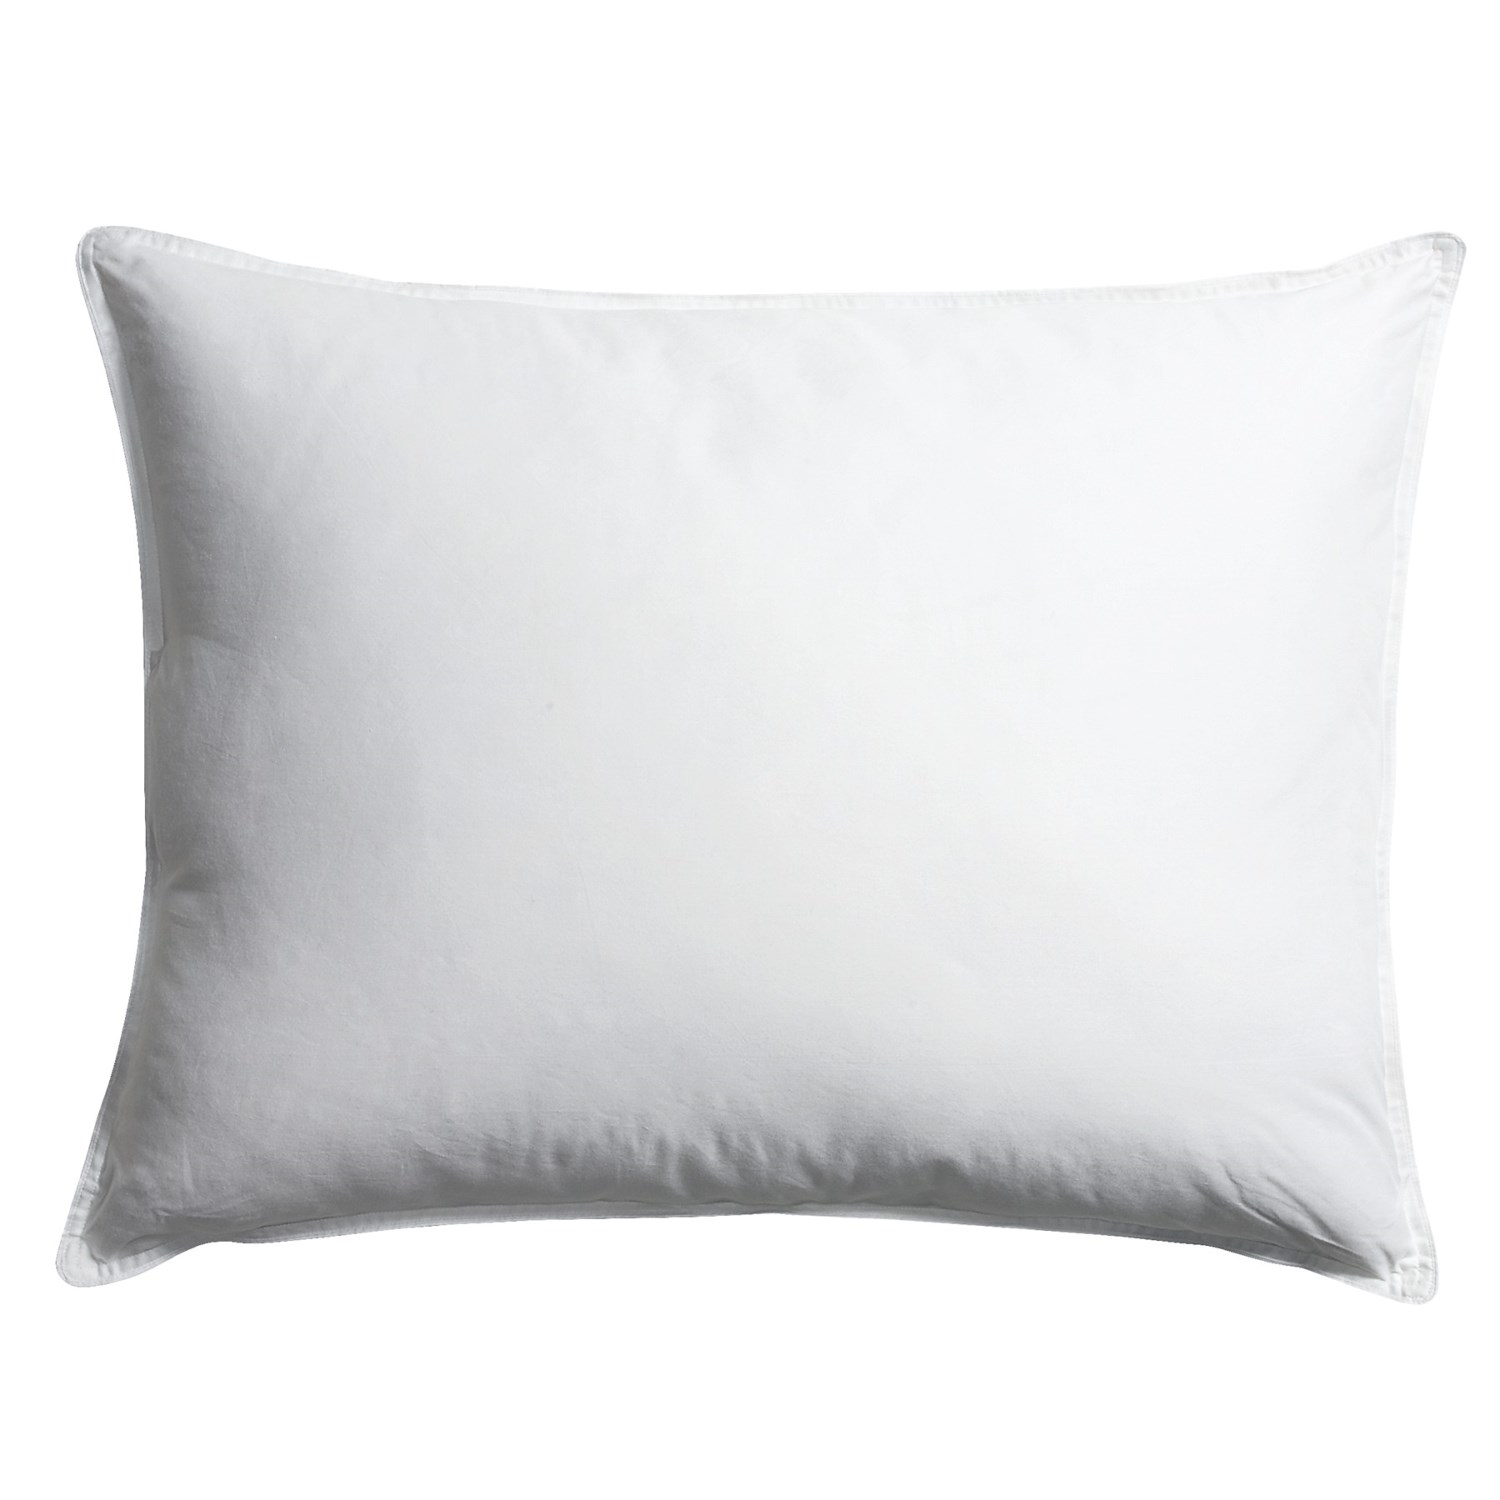 DownTown Villa Collection Down Pillow - Standard - Save 36